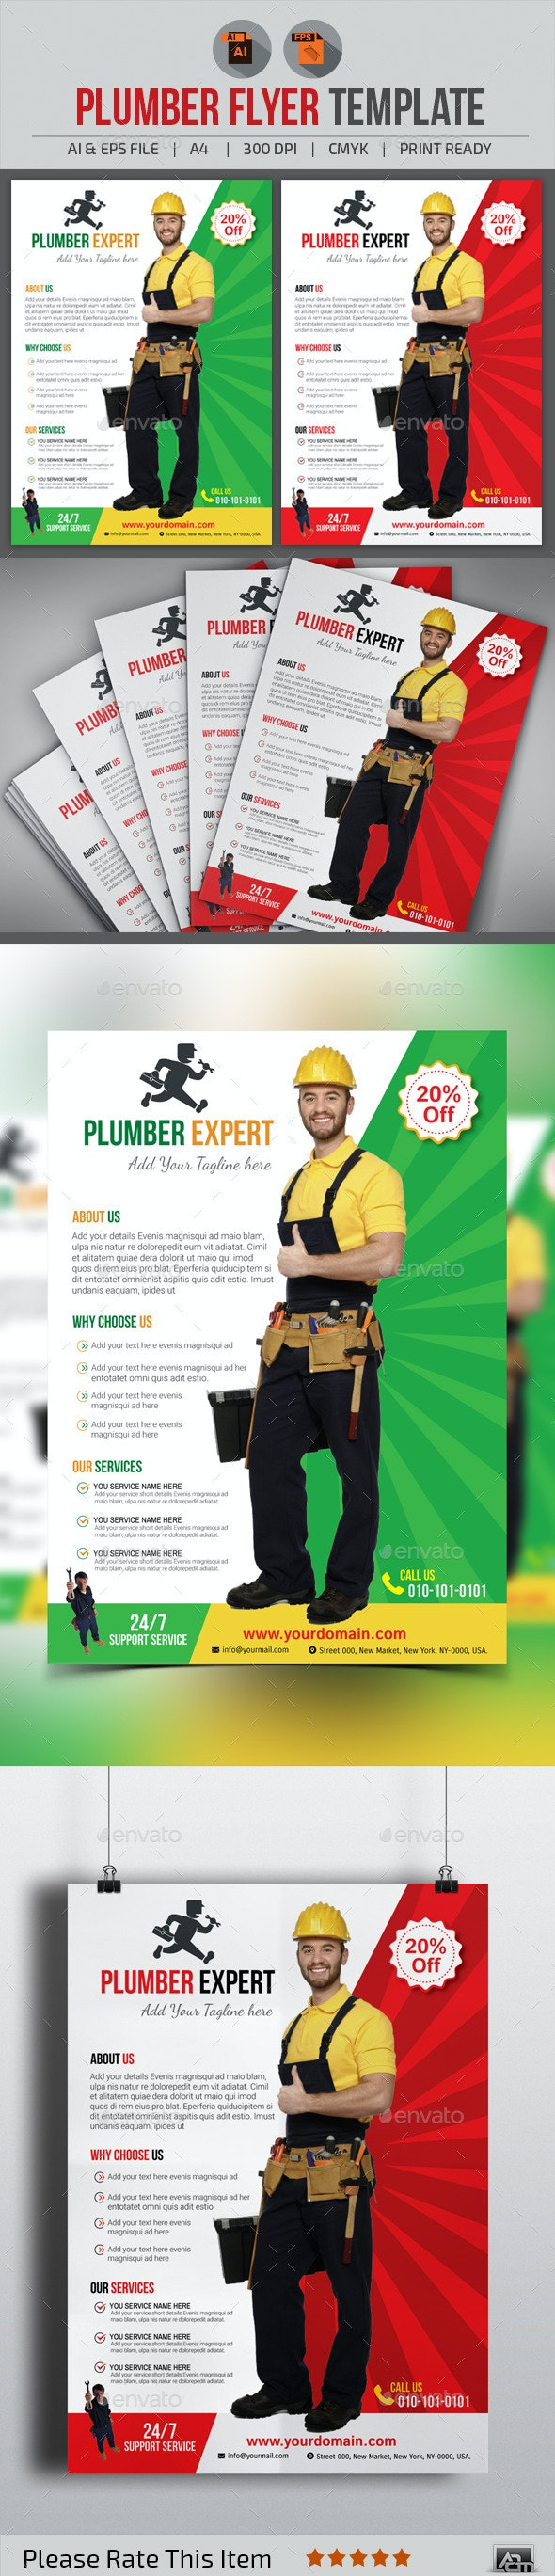 Plumber Flyer Template - Corporate Flyers